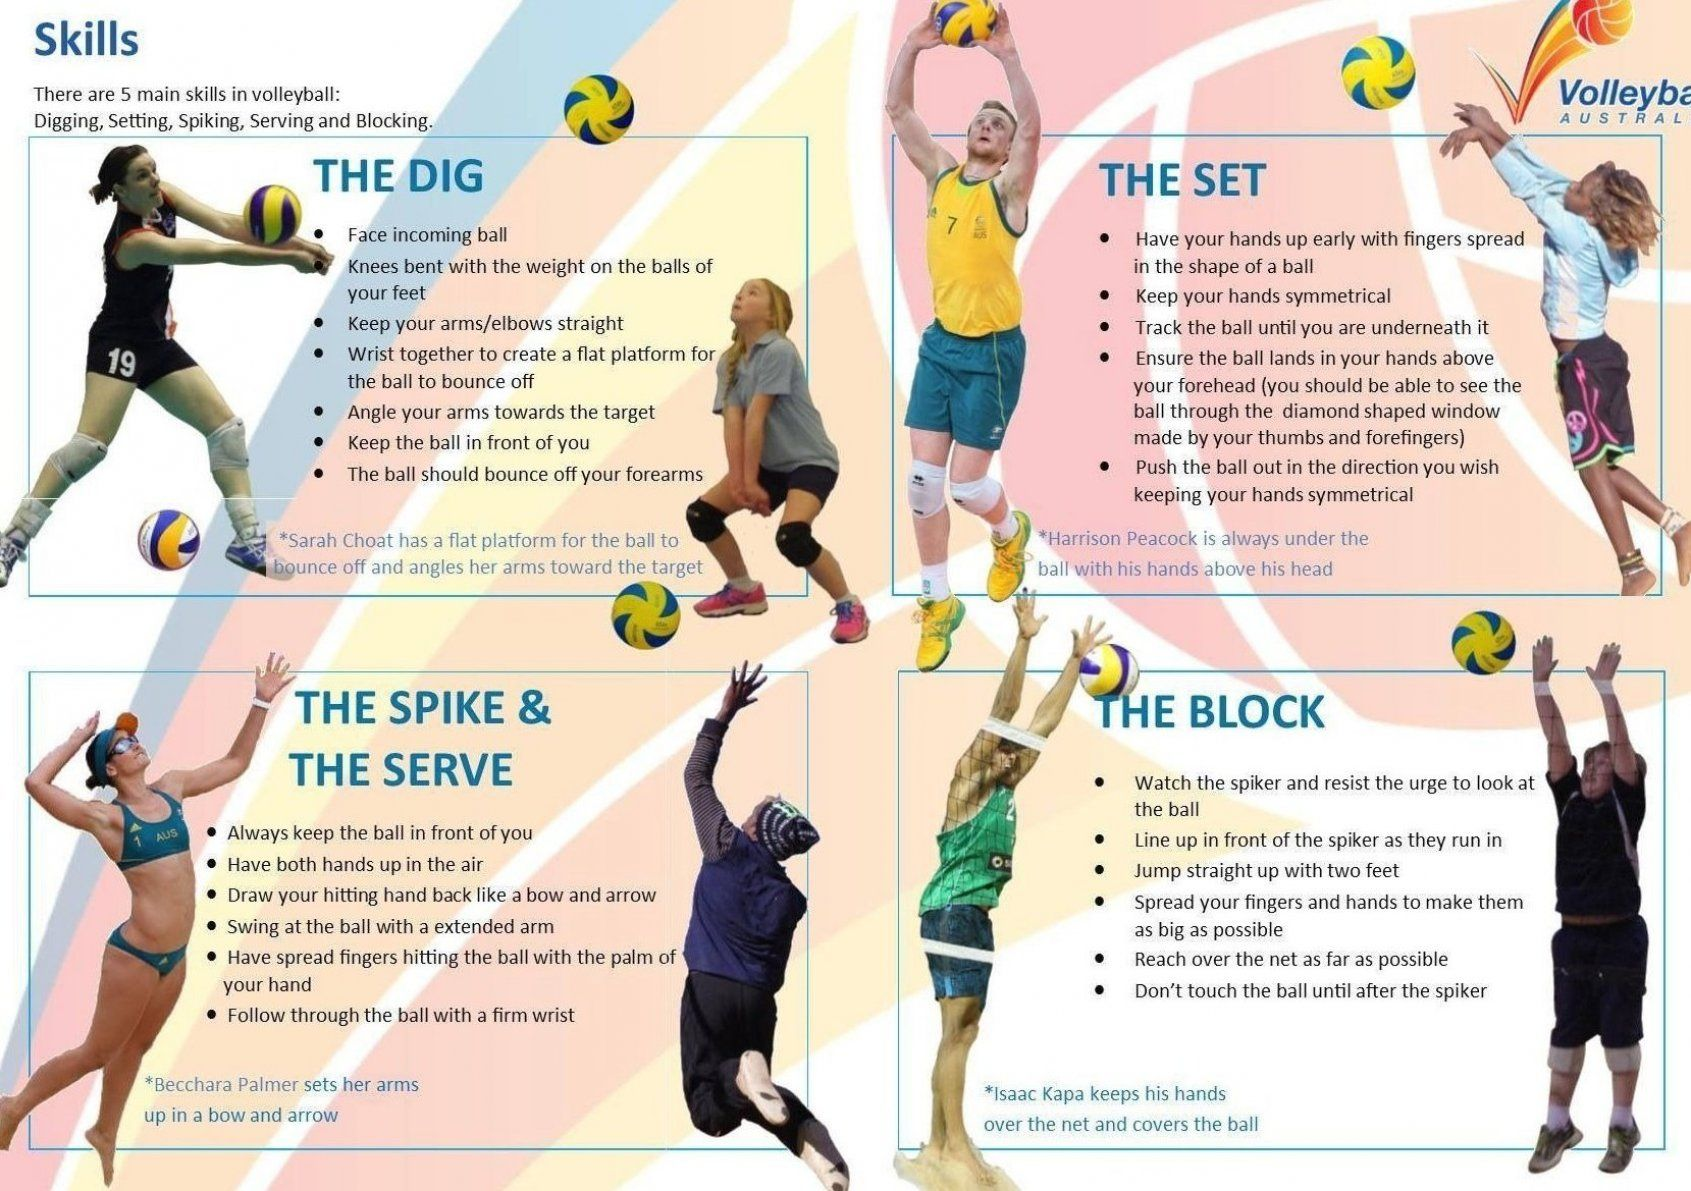 Volleyball Skills Volleyball Skills Model Provided By Volleyball Australia Volleyballskilldefiniti In 2020 Volleyball Skills Volleyball Workouts Coaching Volleyball